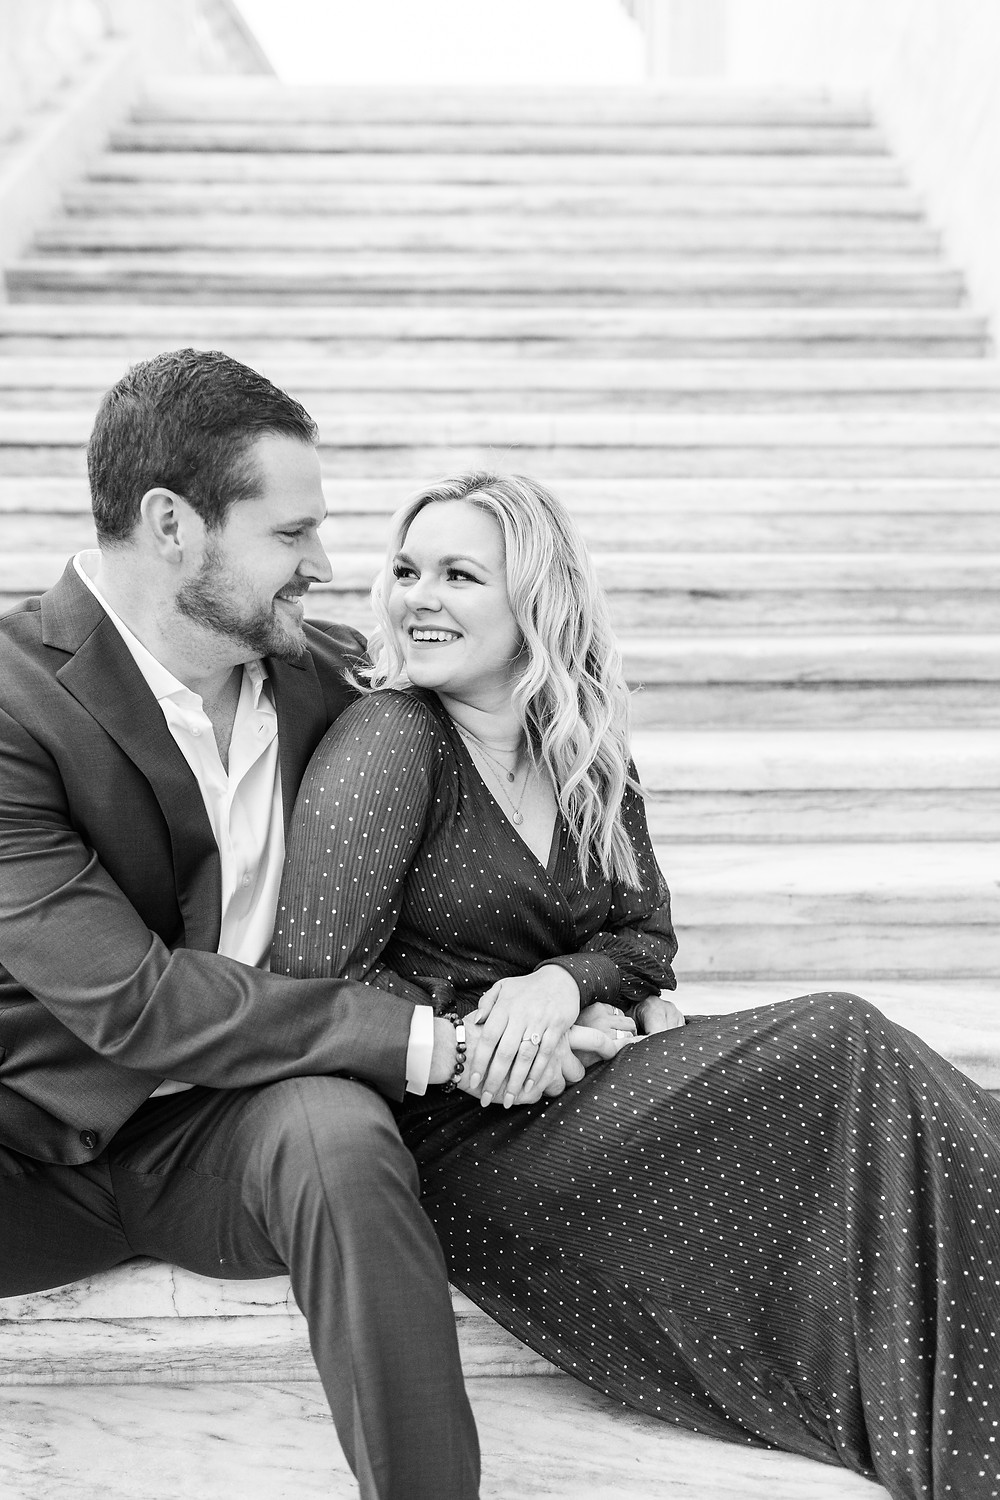 Josh and Andrea wedding photography husband and wife photographer team michigan engagement session photo shoot fiance detroit sitting smiling